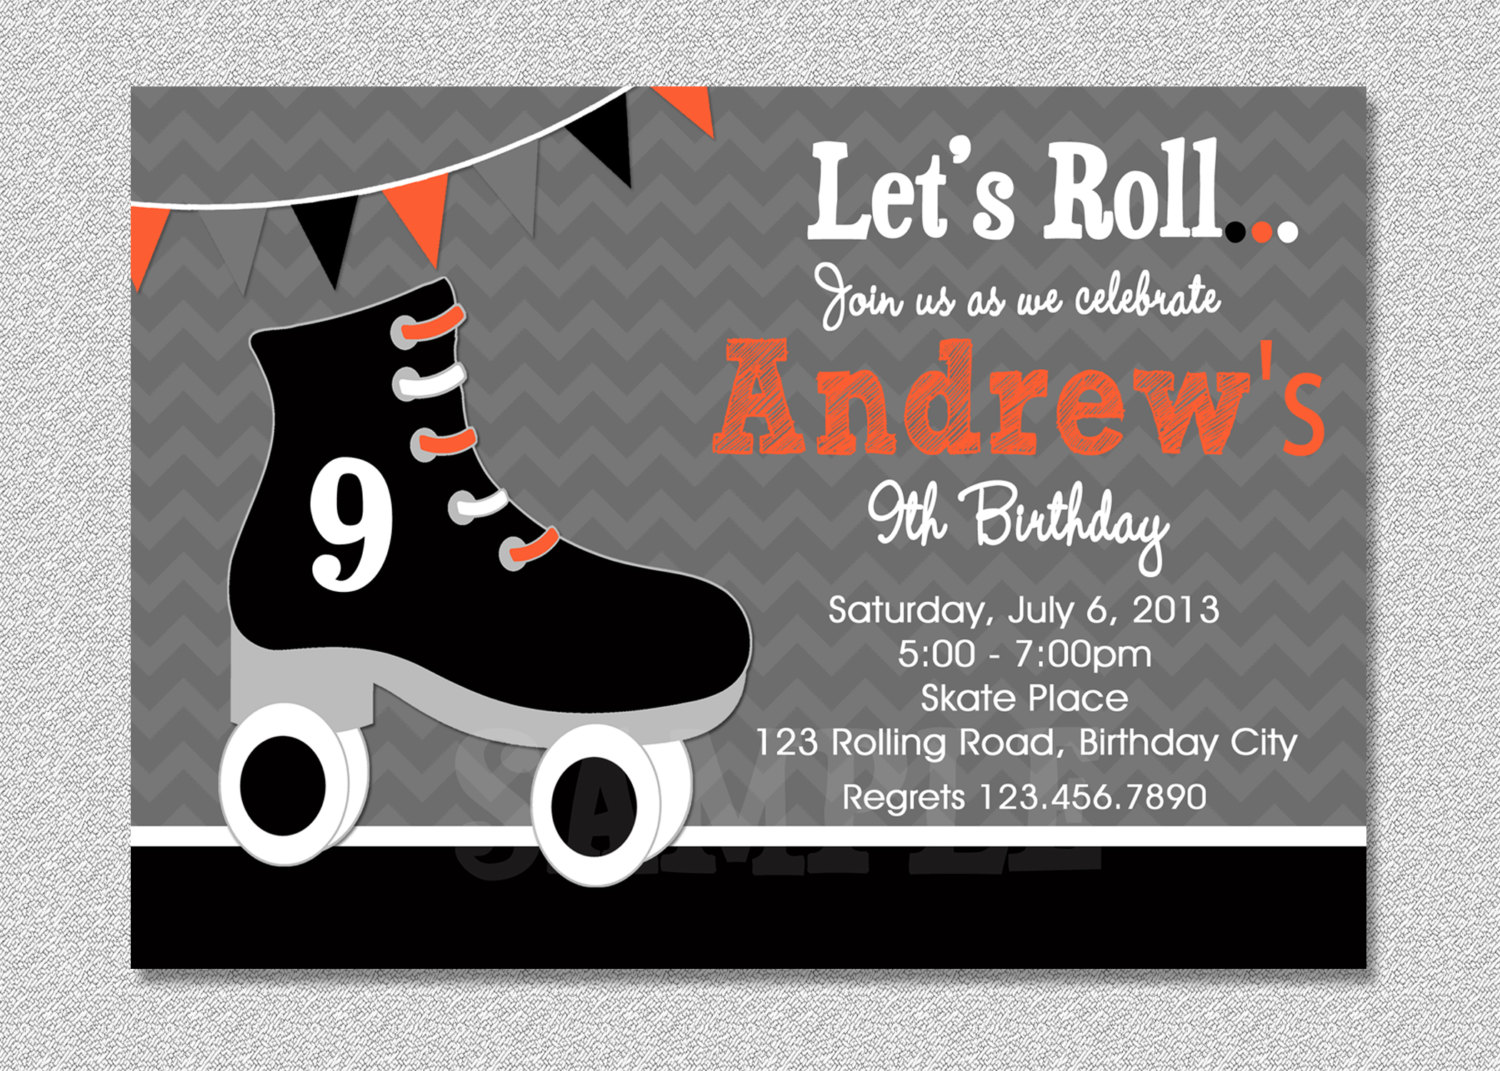 roller skating birthday party invitation template ; roller-skating-birthday-party-invitations-with-some-fantastic-invitations-using-easy-on-the-eye-layout-of-Party-Invitation-Templates-4